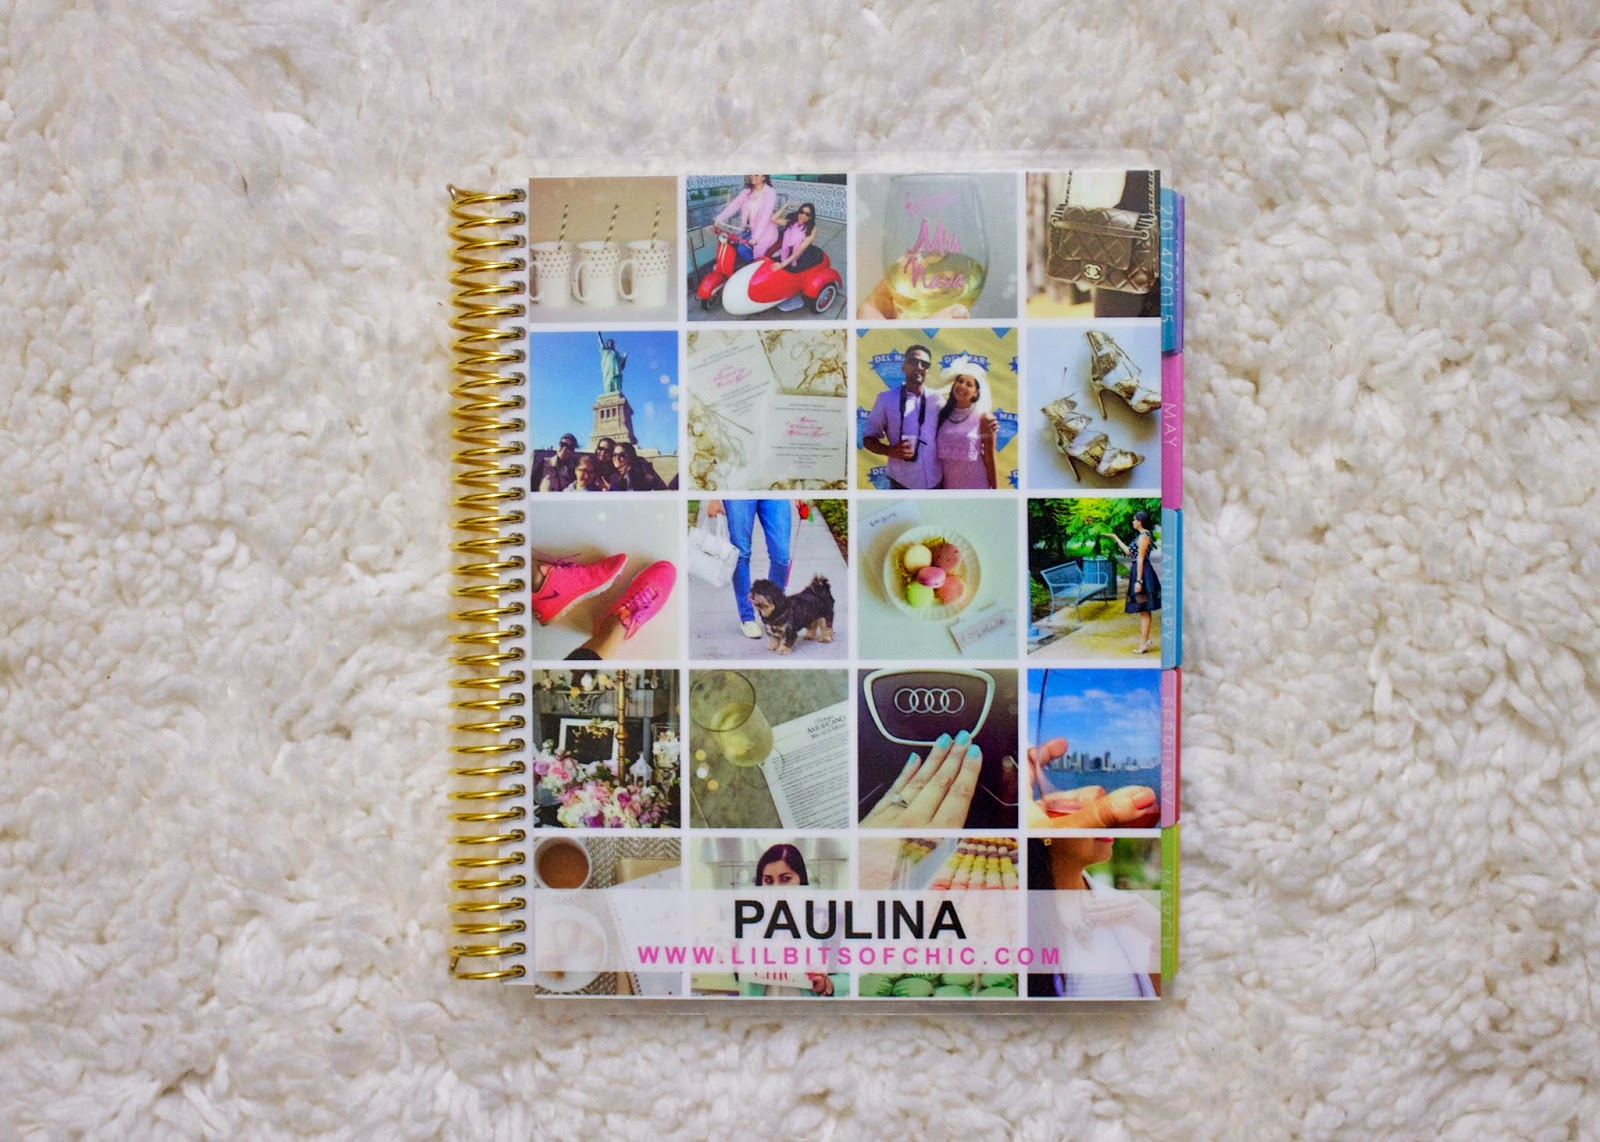 how I customized my planner cover, my customized Erin Condren Life Planner cover, Instagram planner cover, how I customized my cover with my instagrams, how to put instagram pictures on your planner cover, how to customize your erin condren planner cover